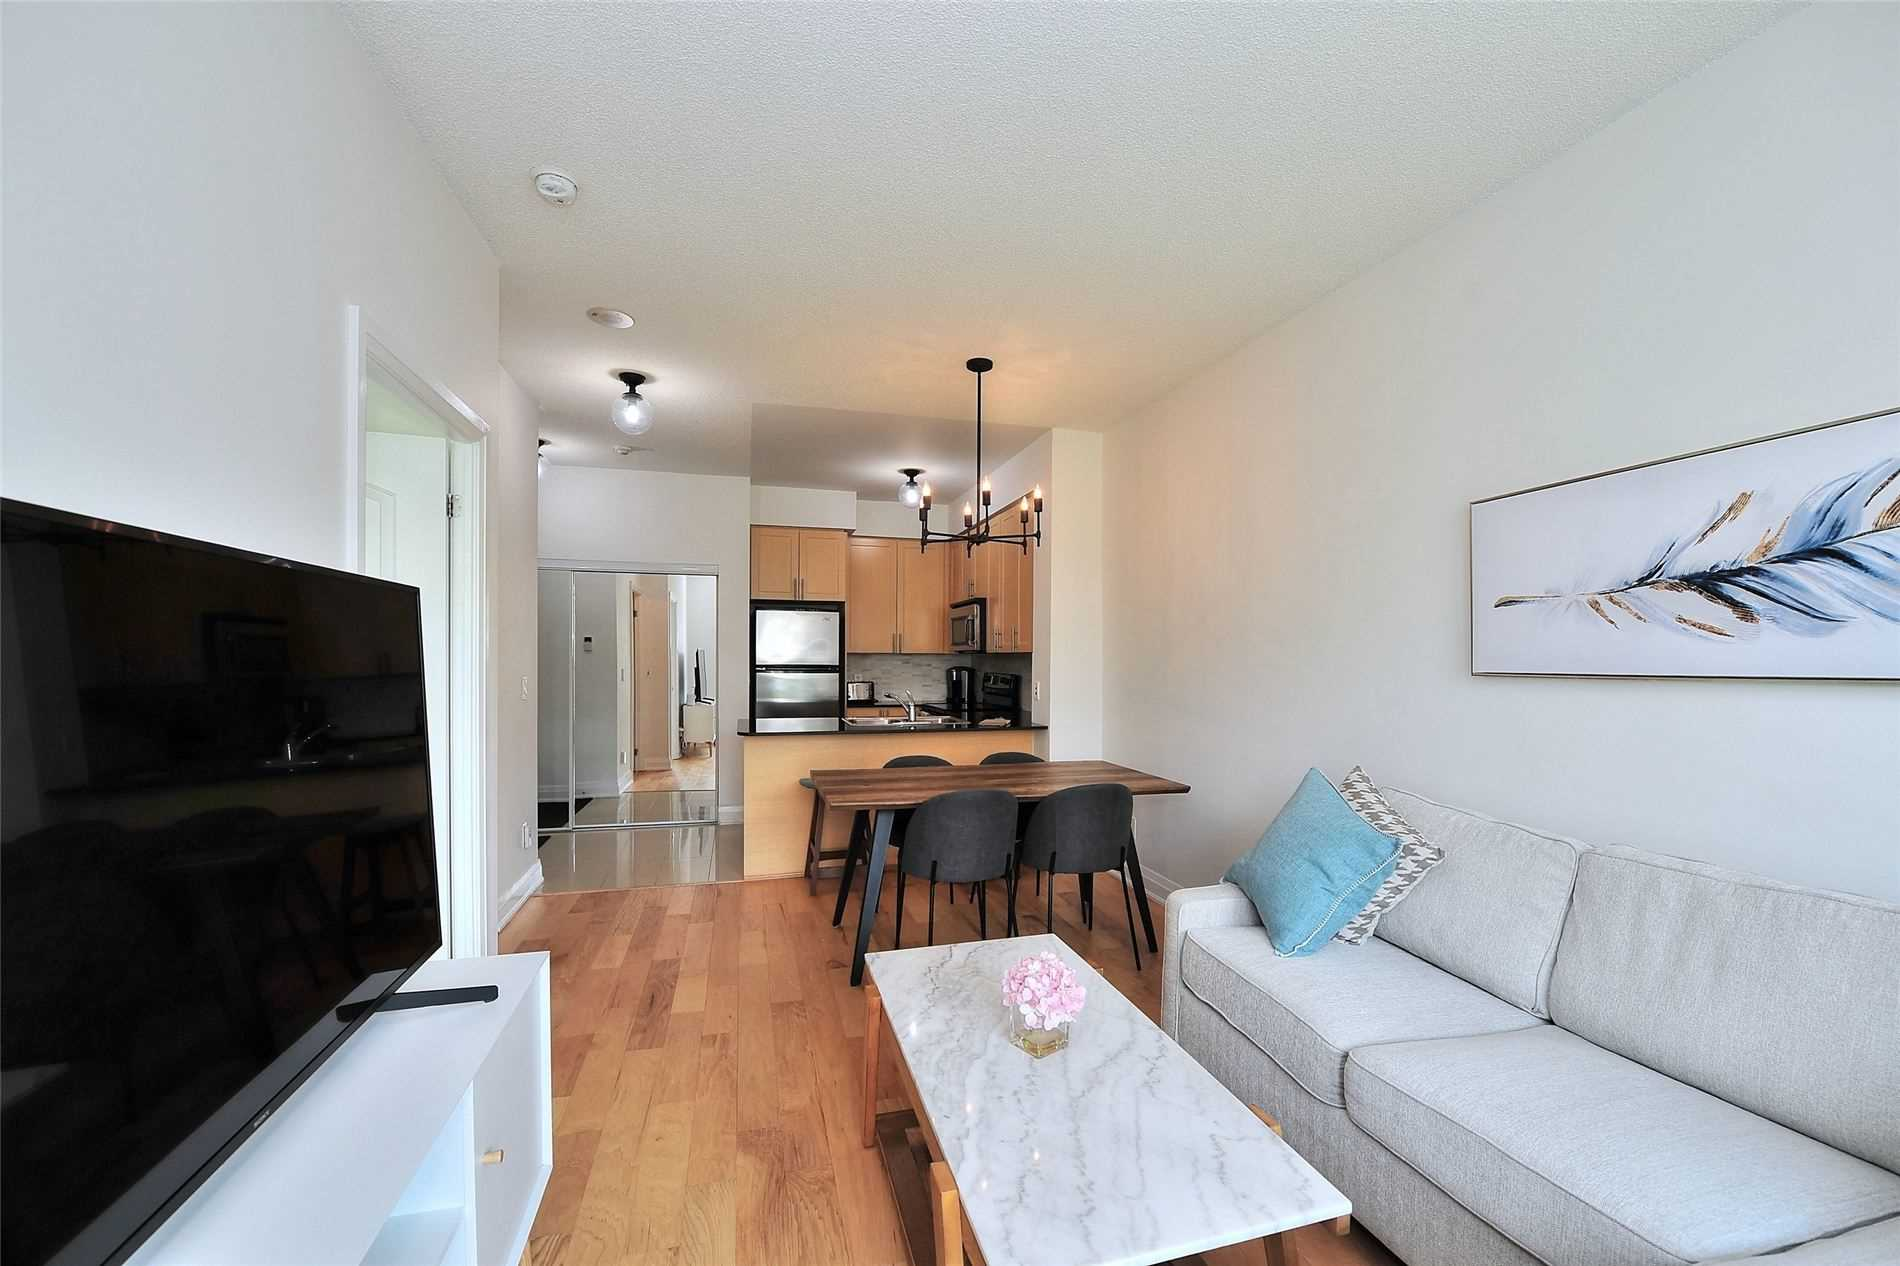 Image 2 of 30 showing inside of 1 Bedroom Condo Apt Apartment for Sale at 30 North Park Rd Unit# 101, Vaughan L4J0G6